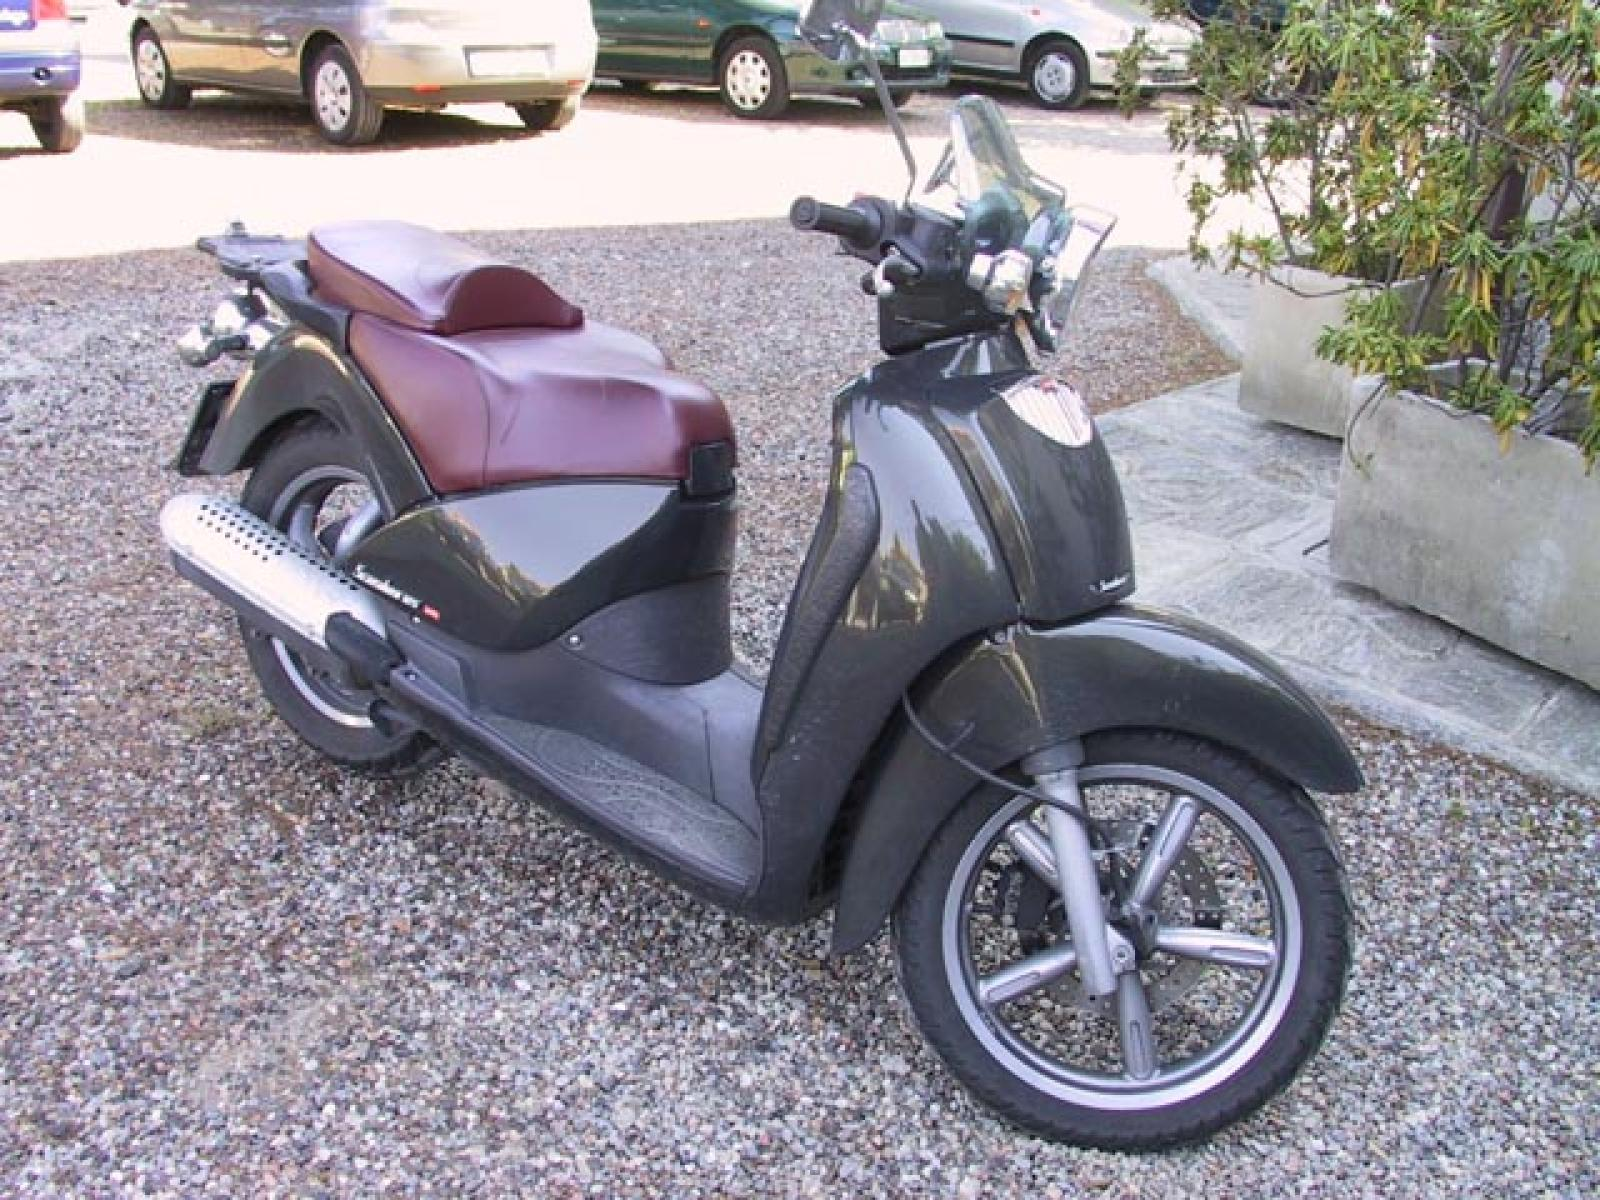 2004 aprilia scarabeo 125 pics specs and information. Black Bedroom Furniture Sets. Home Design Ideas